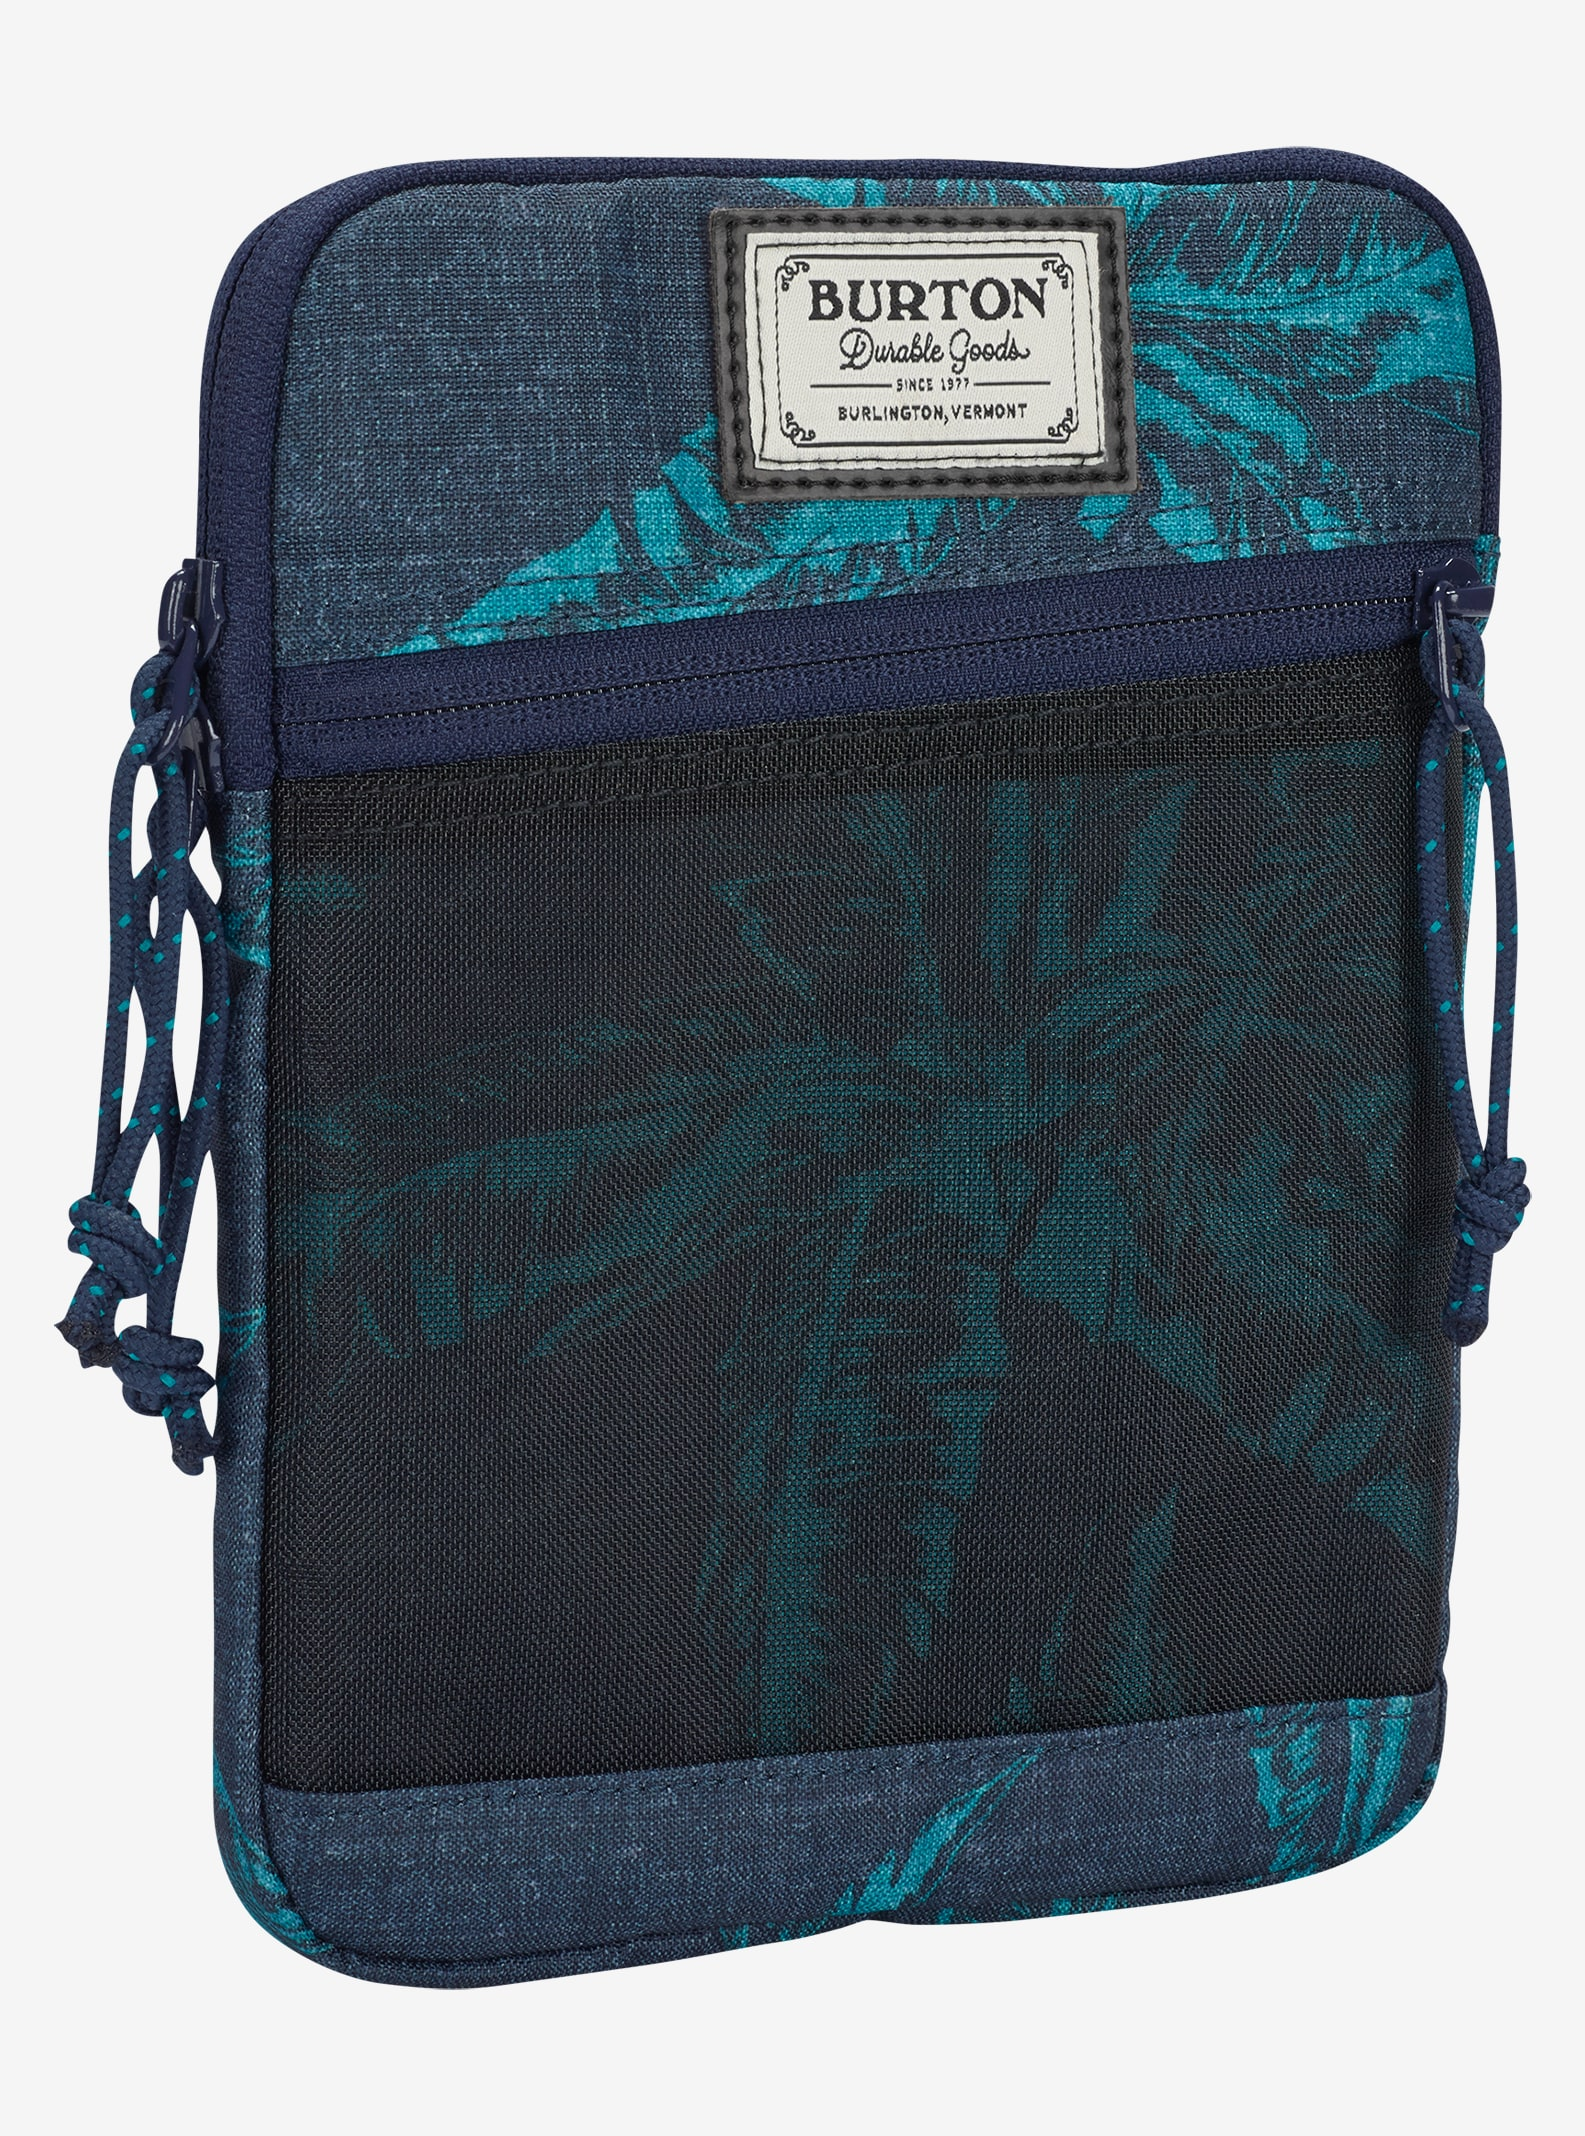 Burton Hyperlink 7in Mini Tablet Sleeve shown in Tropical Print